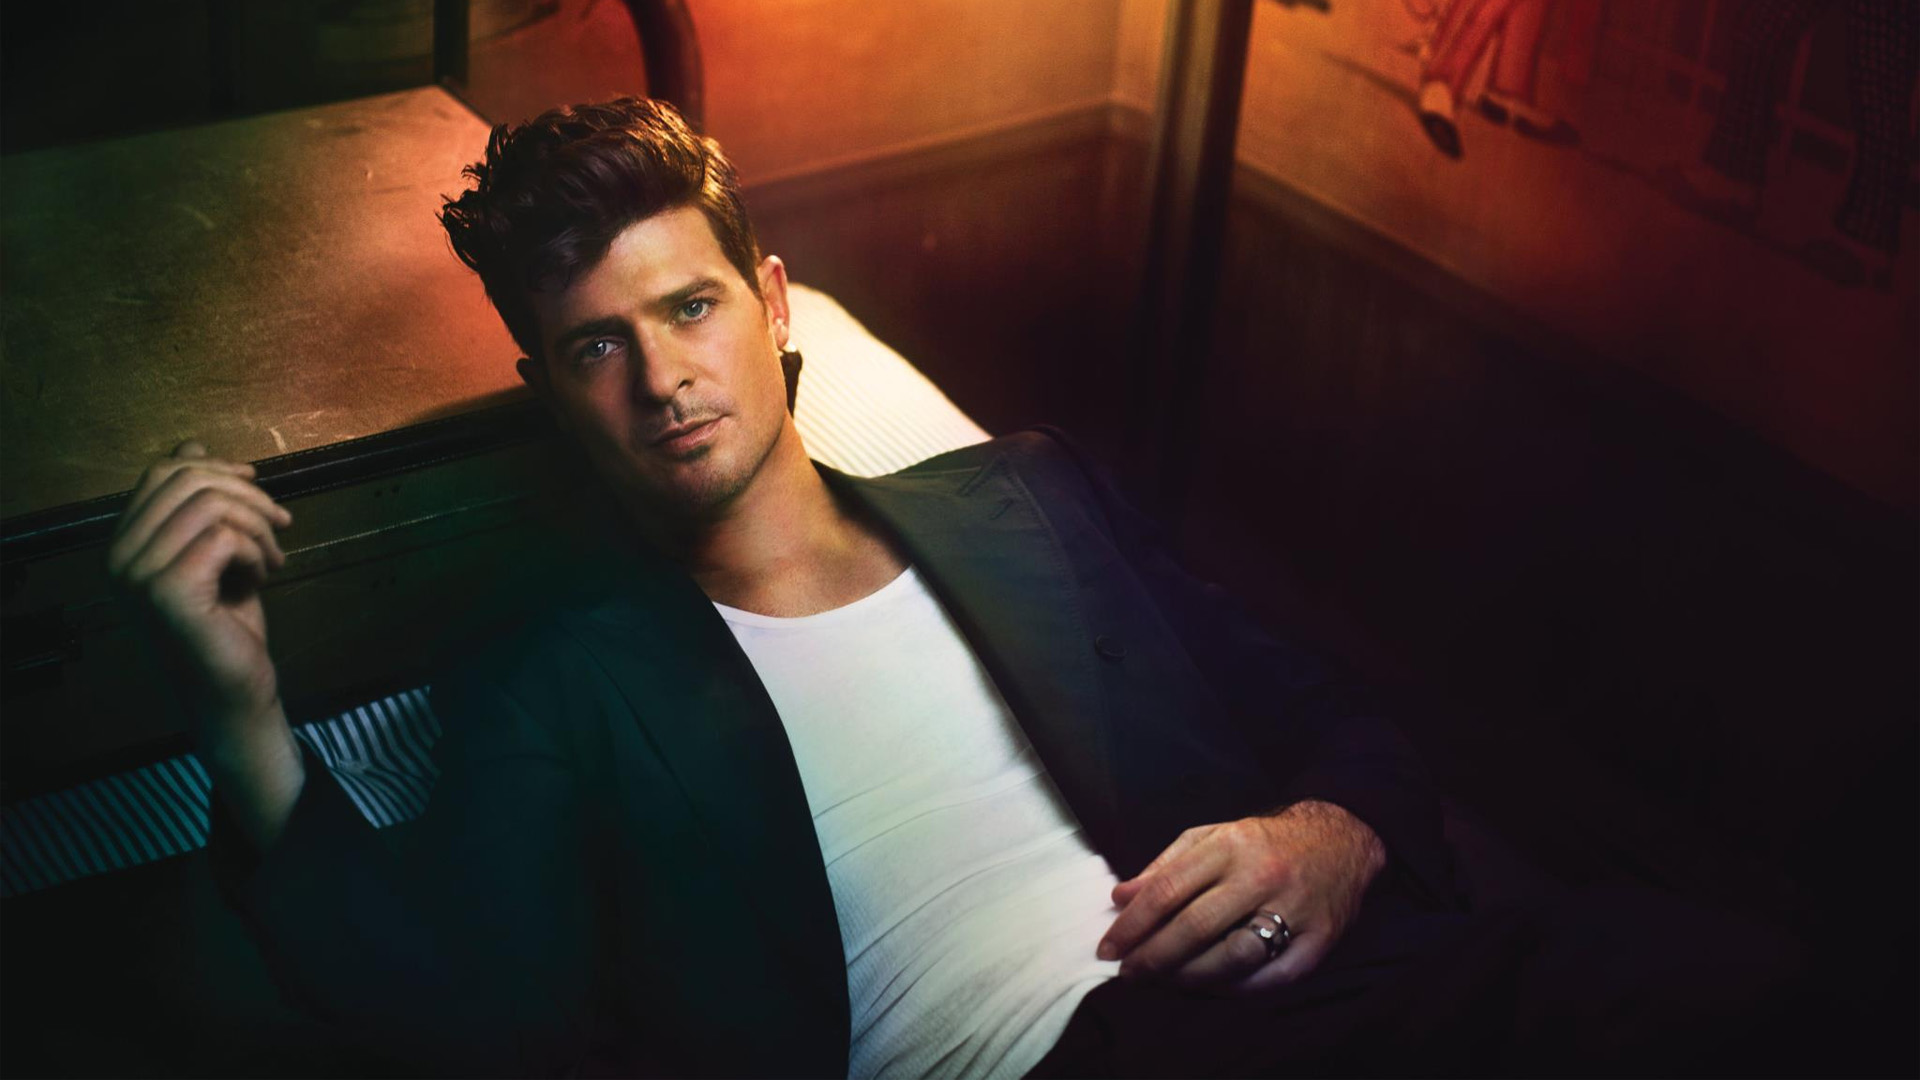 One of the more charismatic, flashy, and commercially successful R&B acts of the 2000s and 2010s, Robin Thicke didn't have the toughest row to hoe to ...